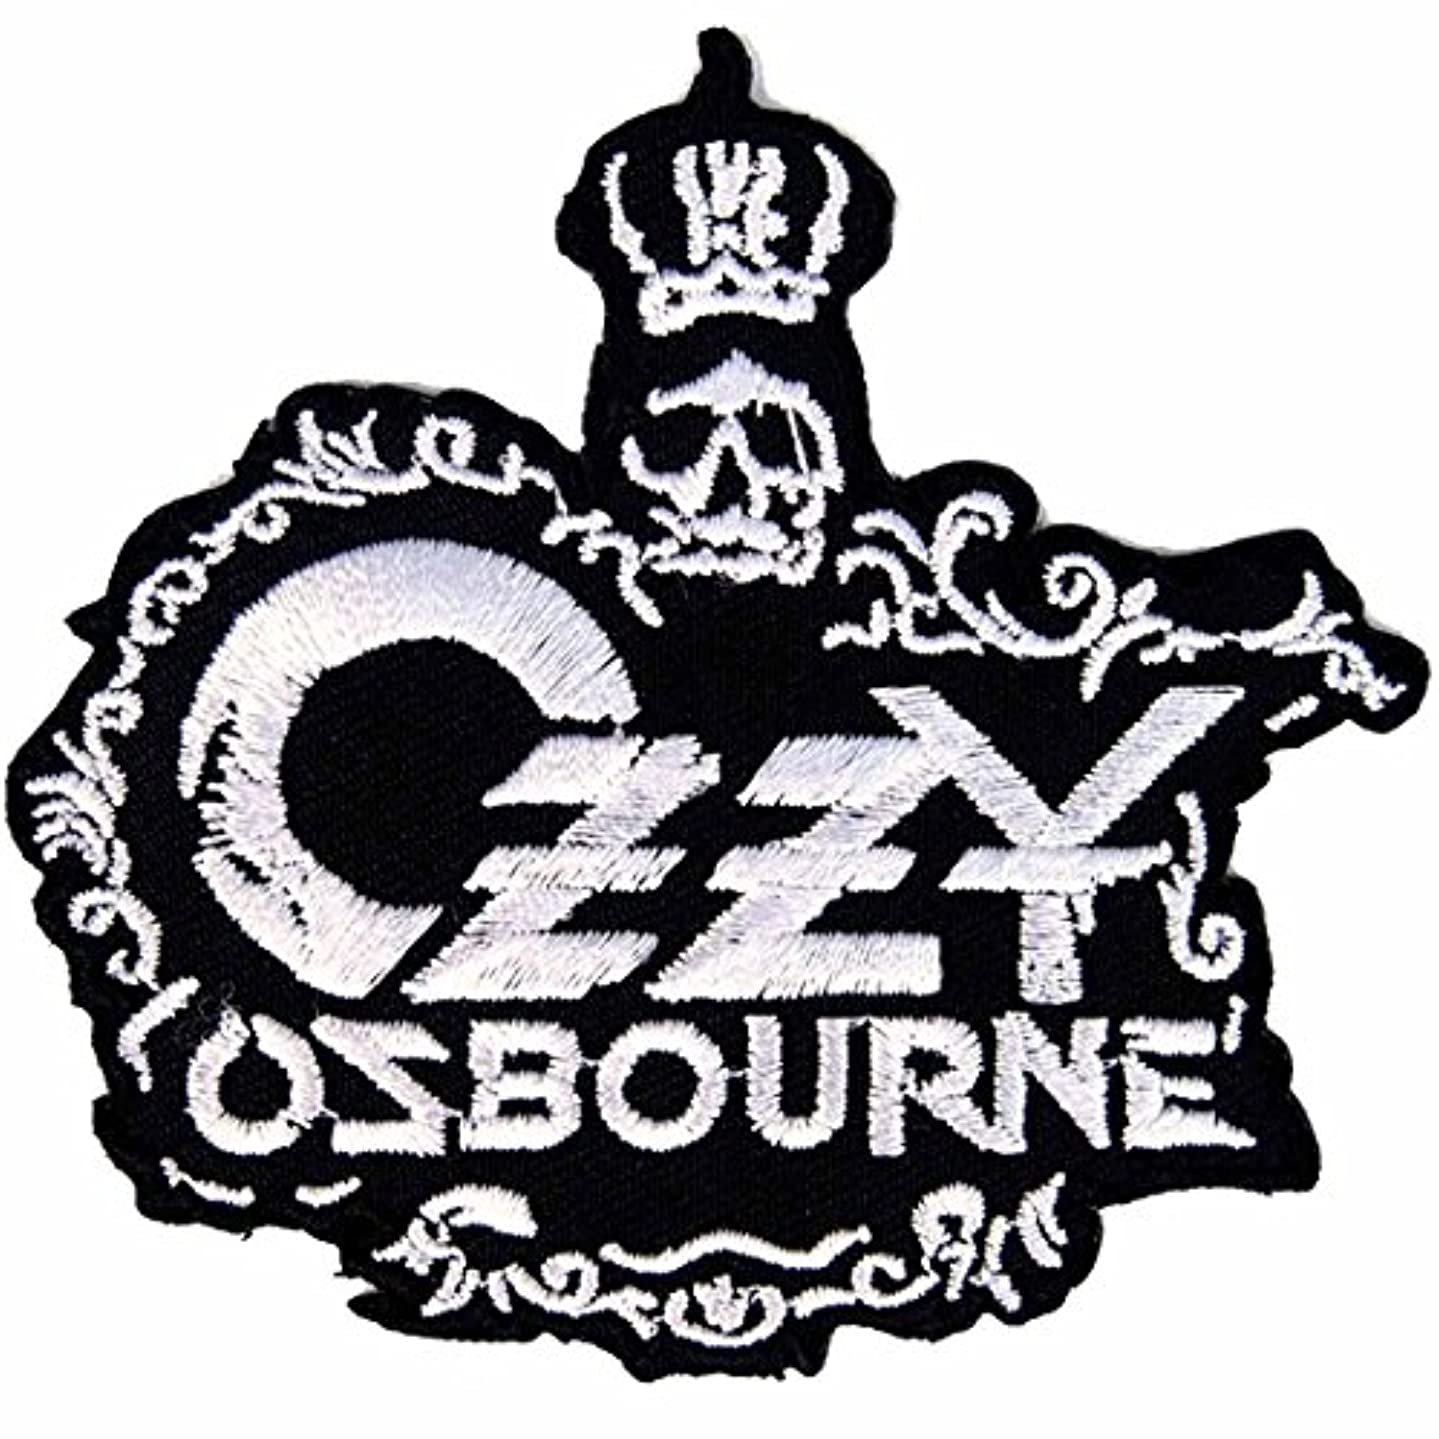 Ozzy Osbourne Heavy metal hard rock Iron On Patches # B-W # WITH FREE GIFT